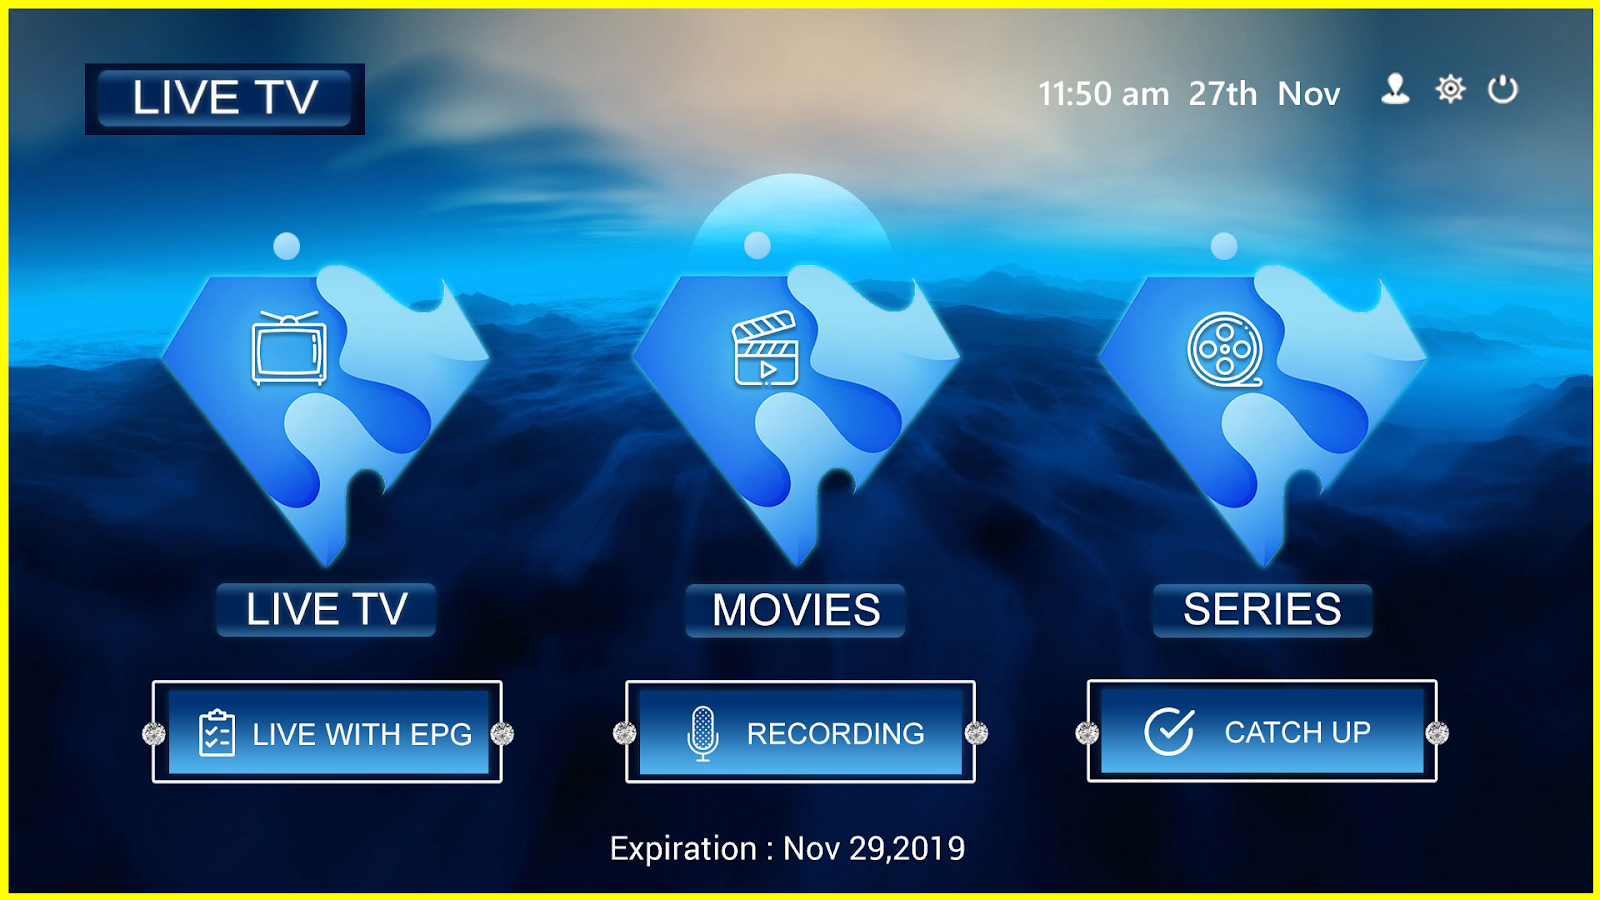 Best iptv apk for android 2019 | 2019 BEST ANDROID LIVE IPTV